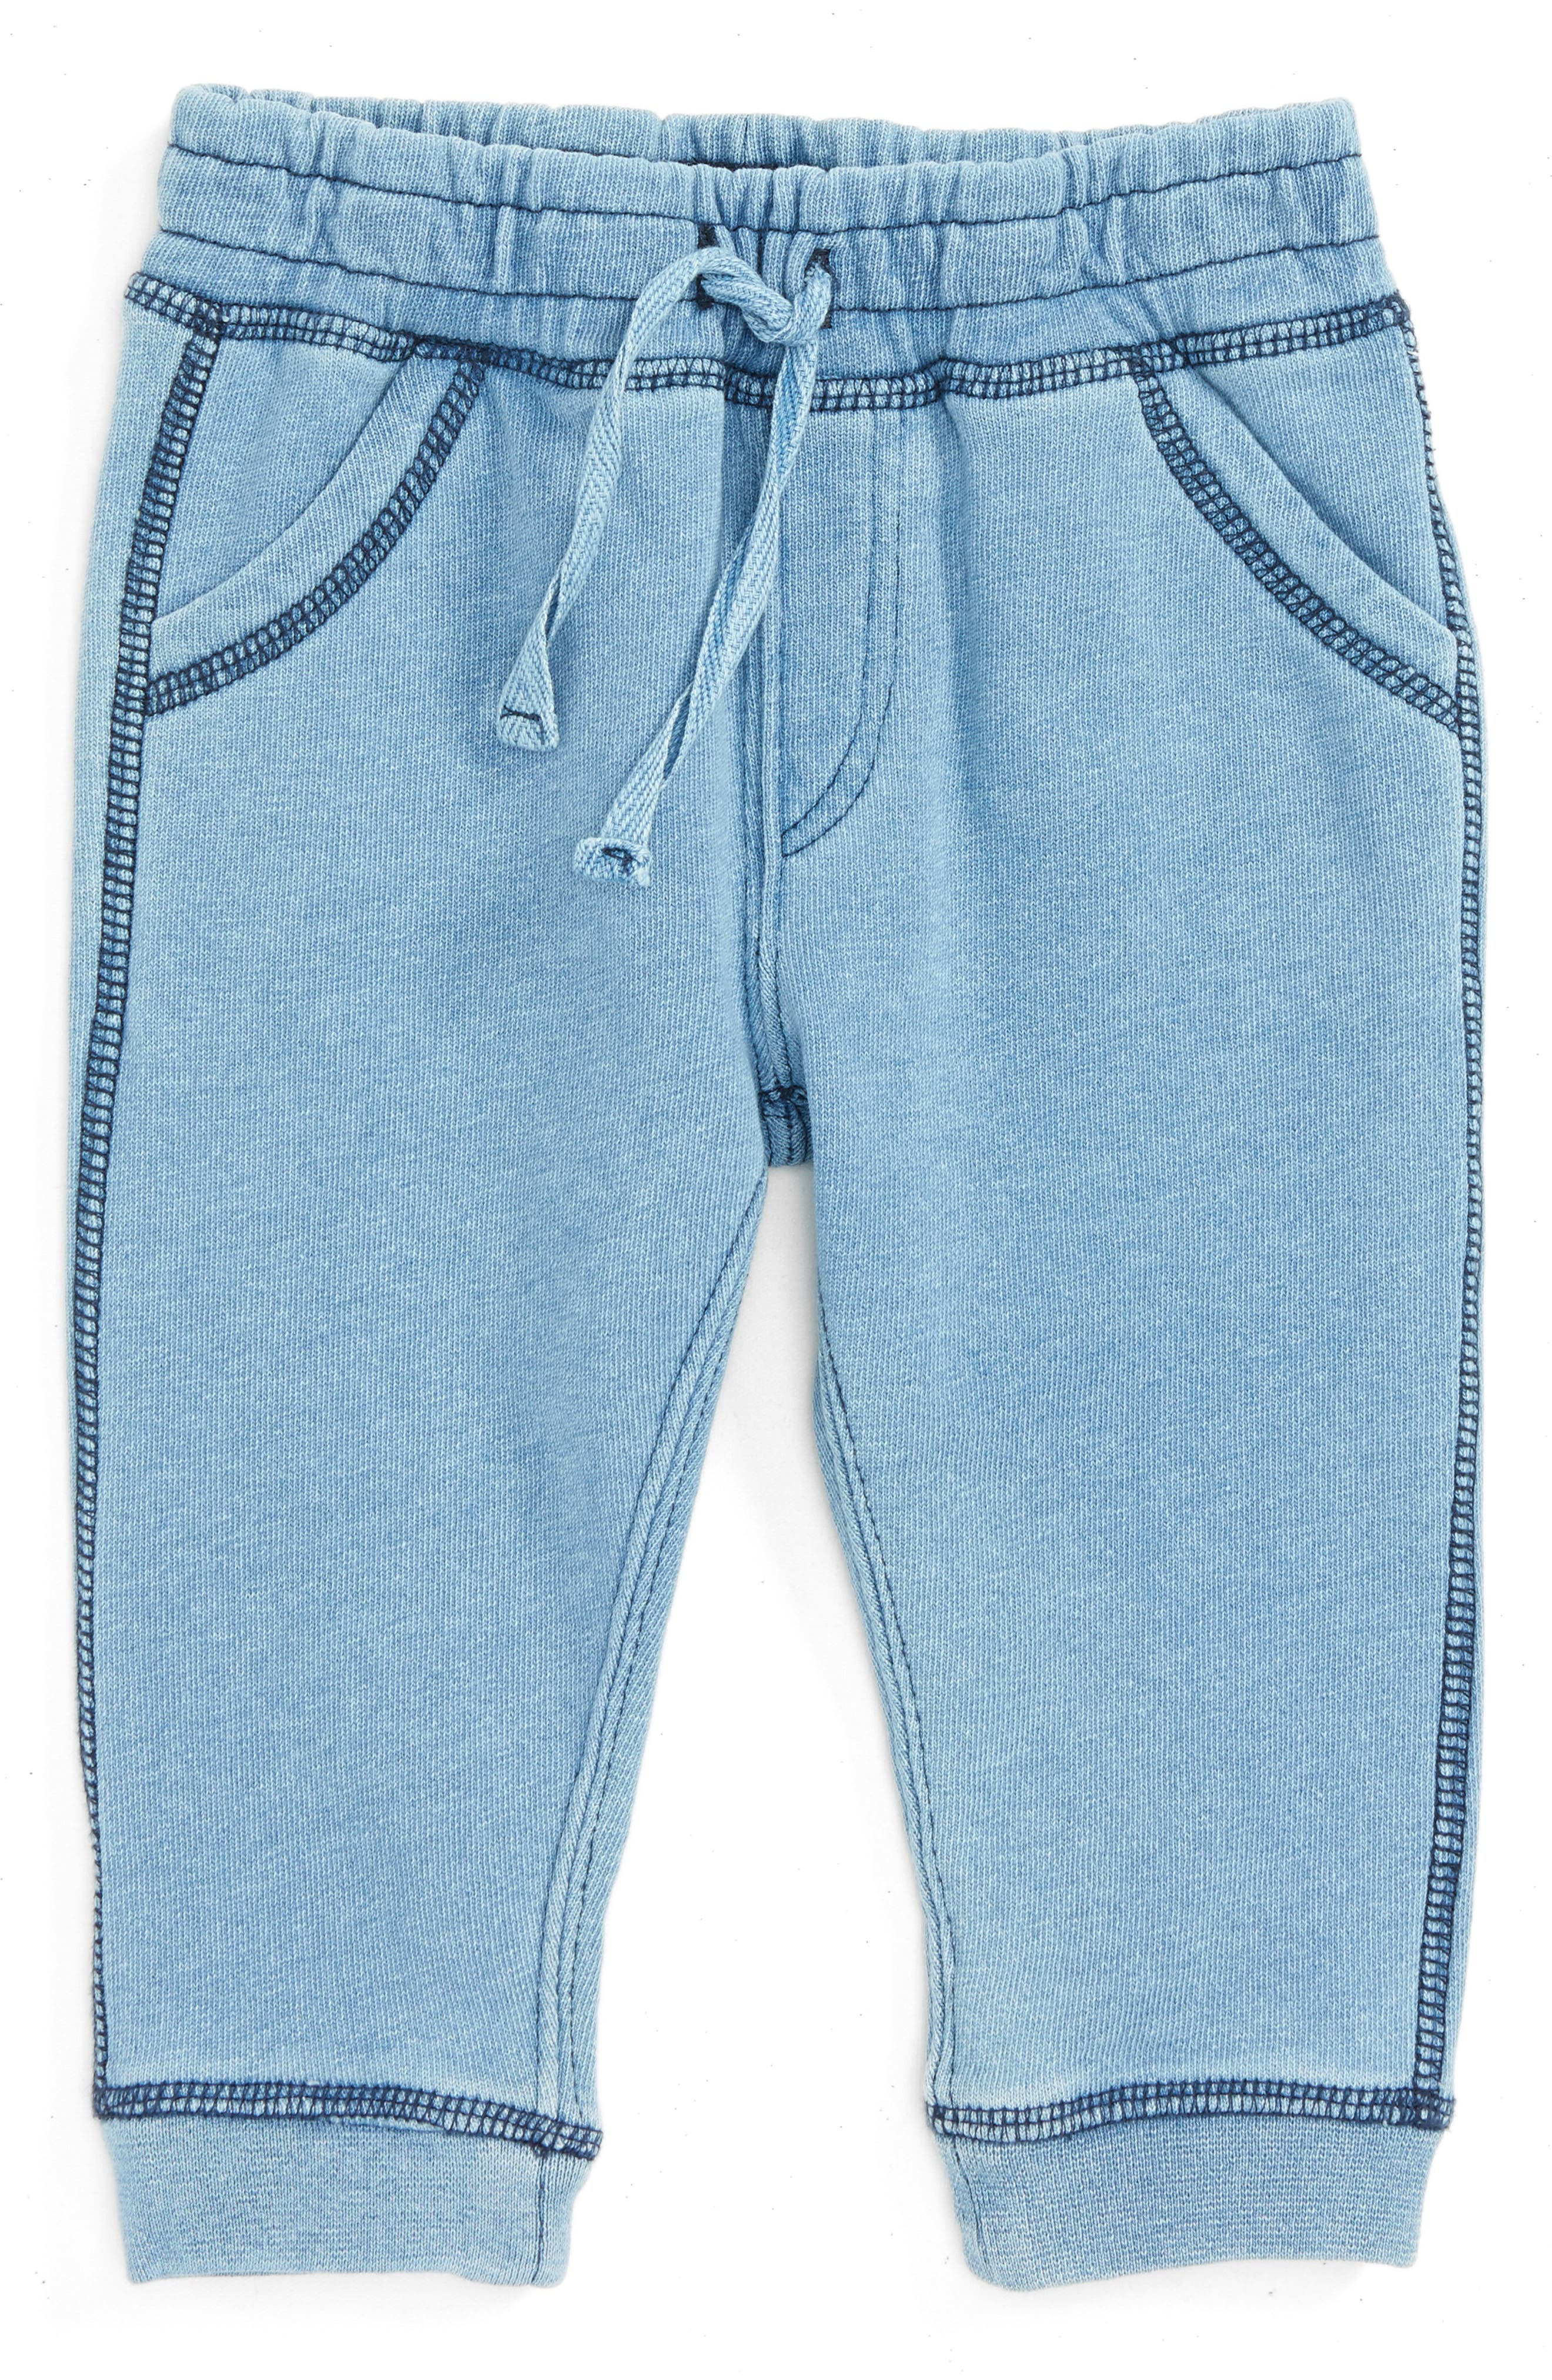 TUCKER + TATE Knit Denim Pants